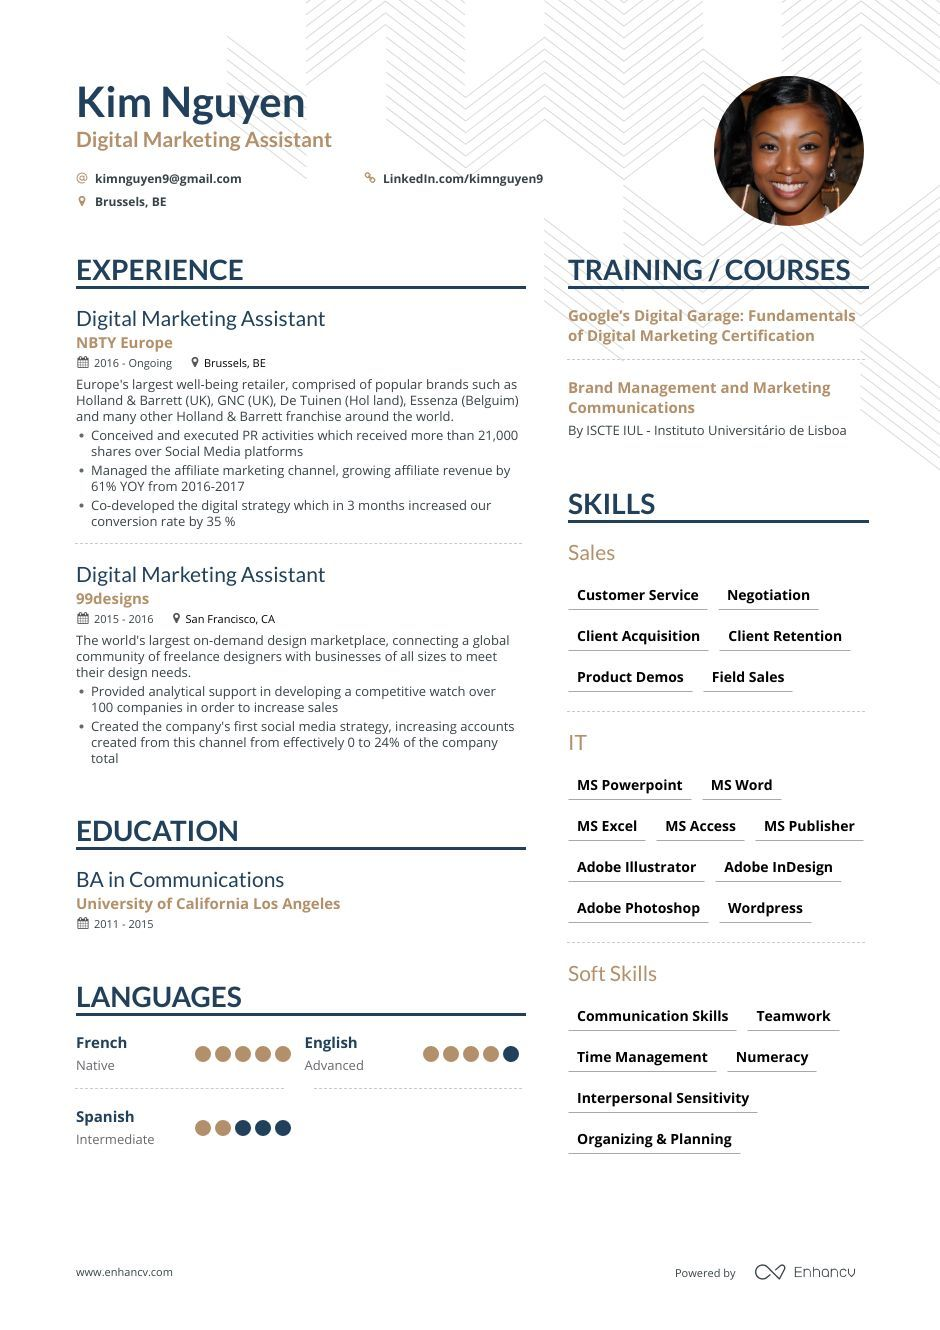 Marketing Associate Resume Guide With Examples Professional Tips Resume Guide Resume Resume Examples